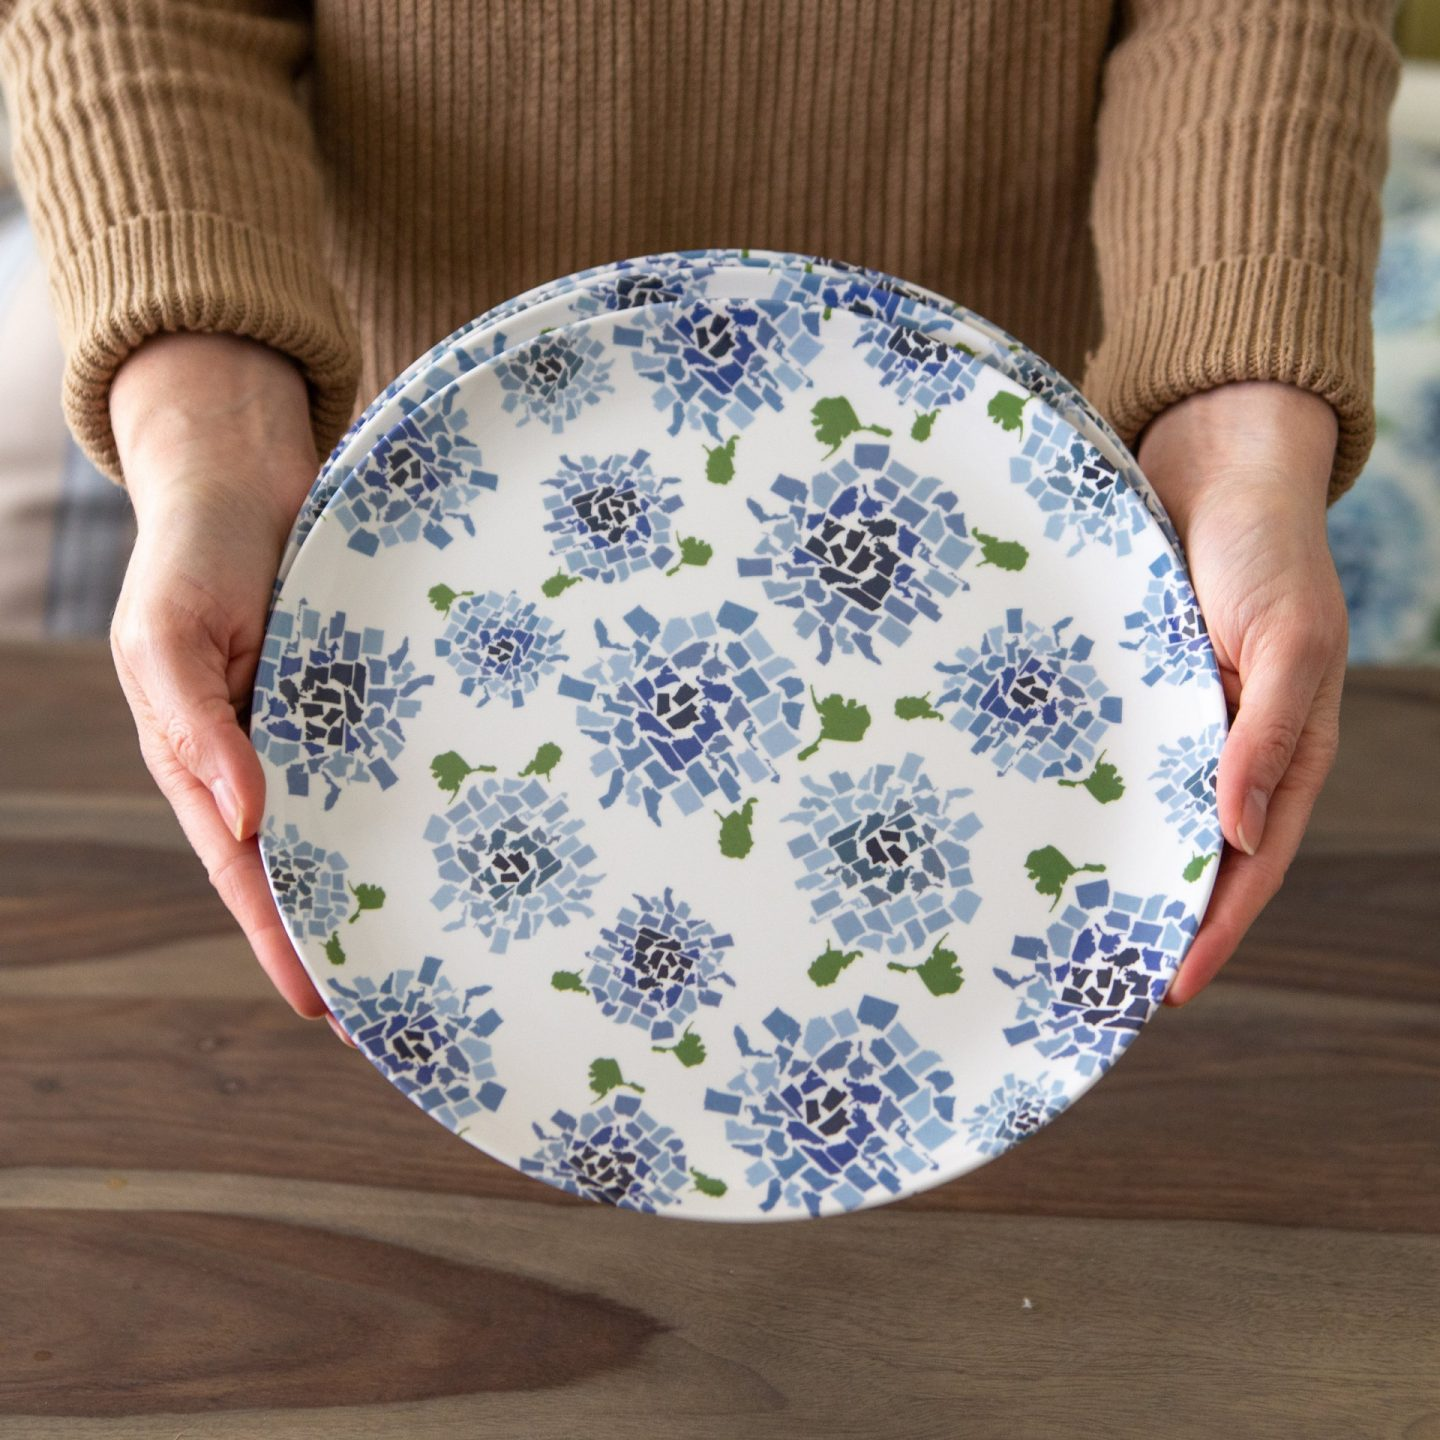 Honey & Hank fifty states hydrangea melamine dinner plate